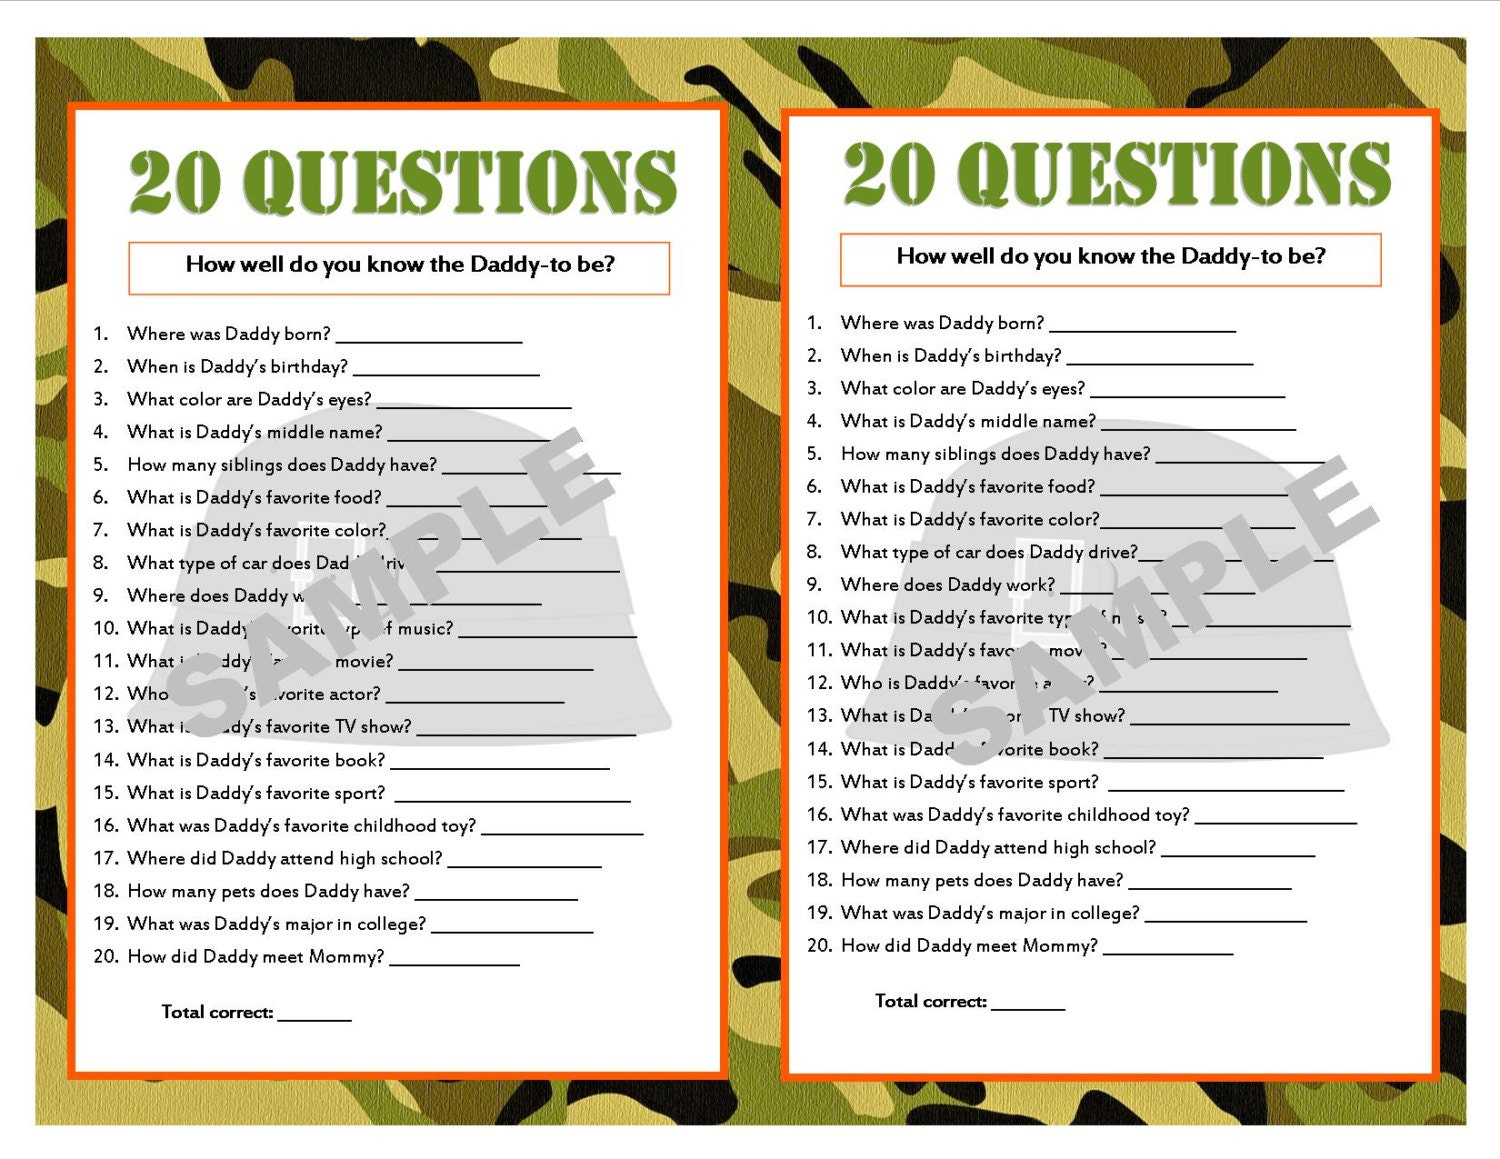 Best 20 questions game questions